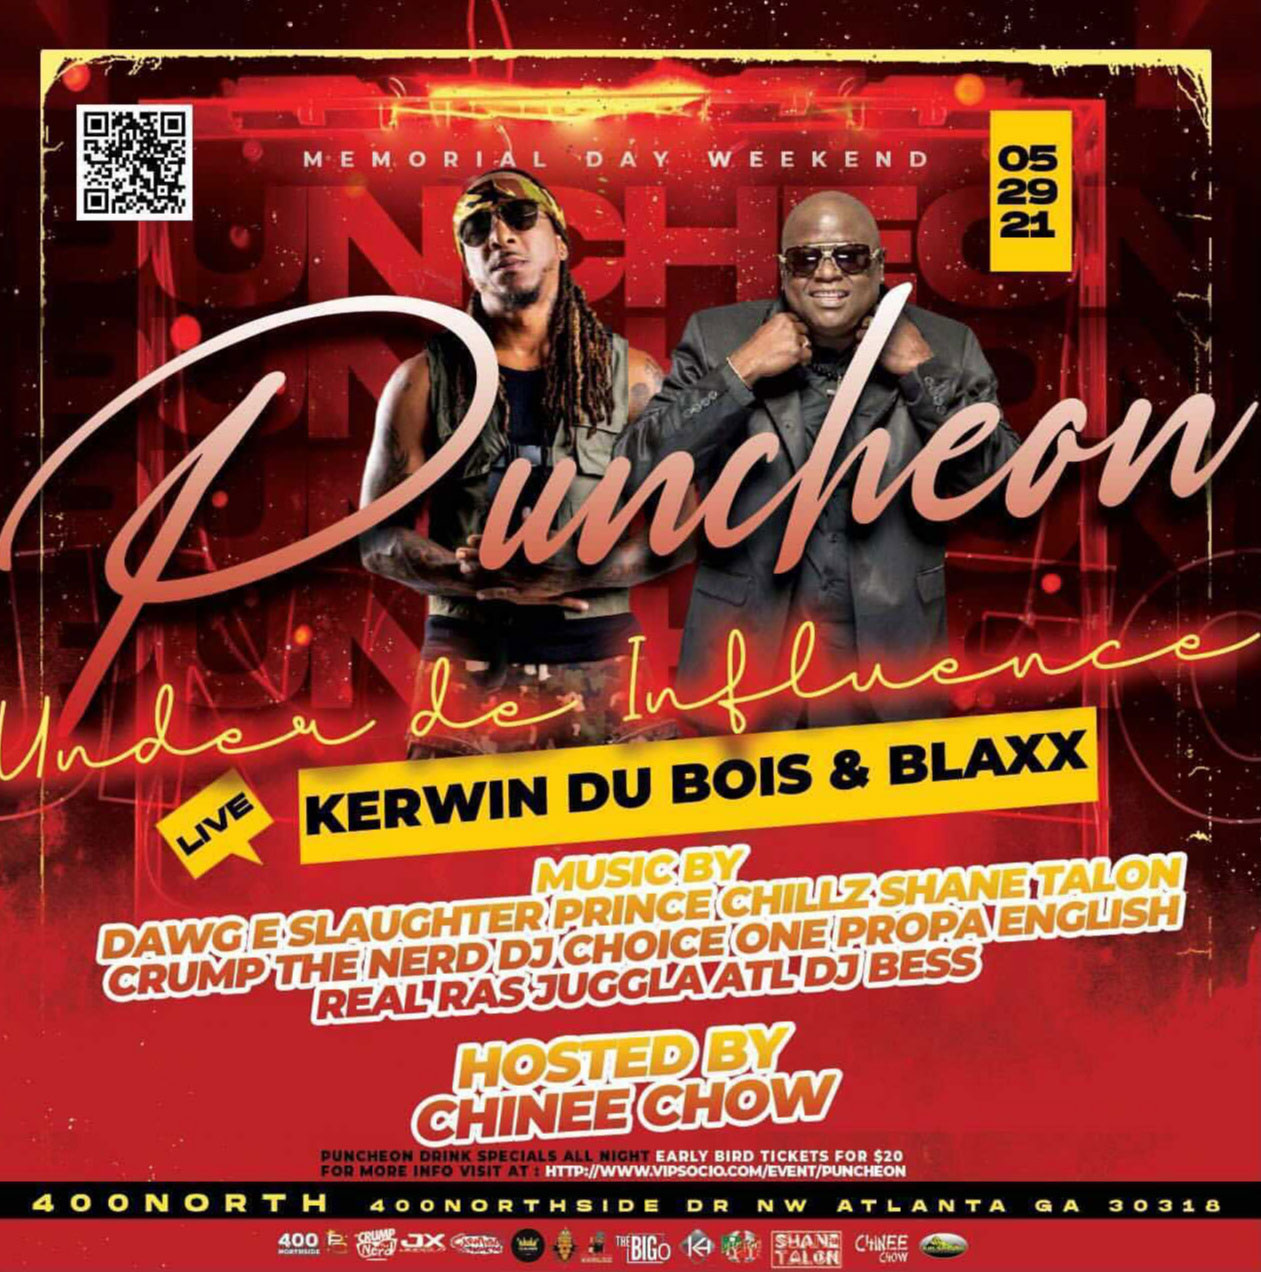 Puncheon w/ Kerwin Du Bois and Blaxx Live in Concert